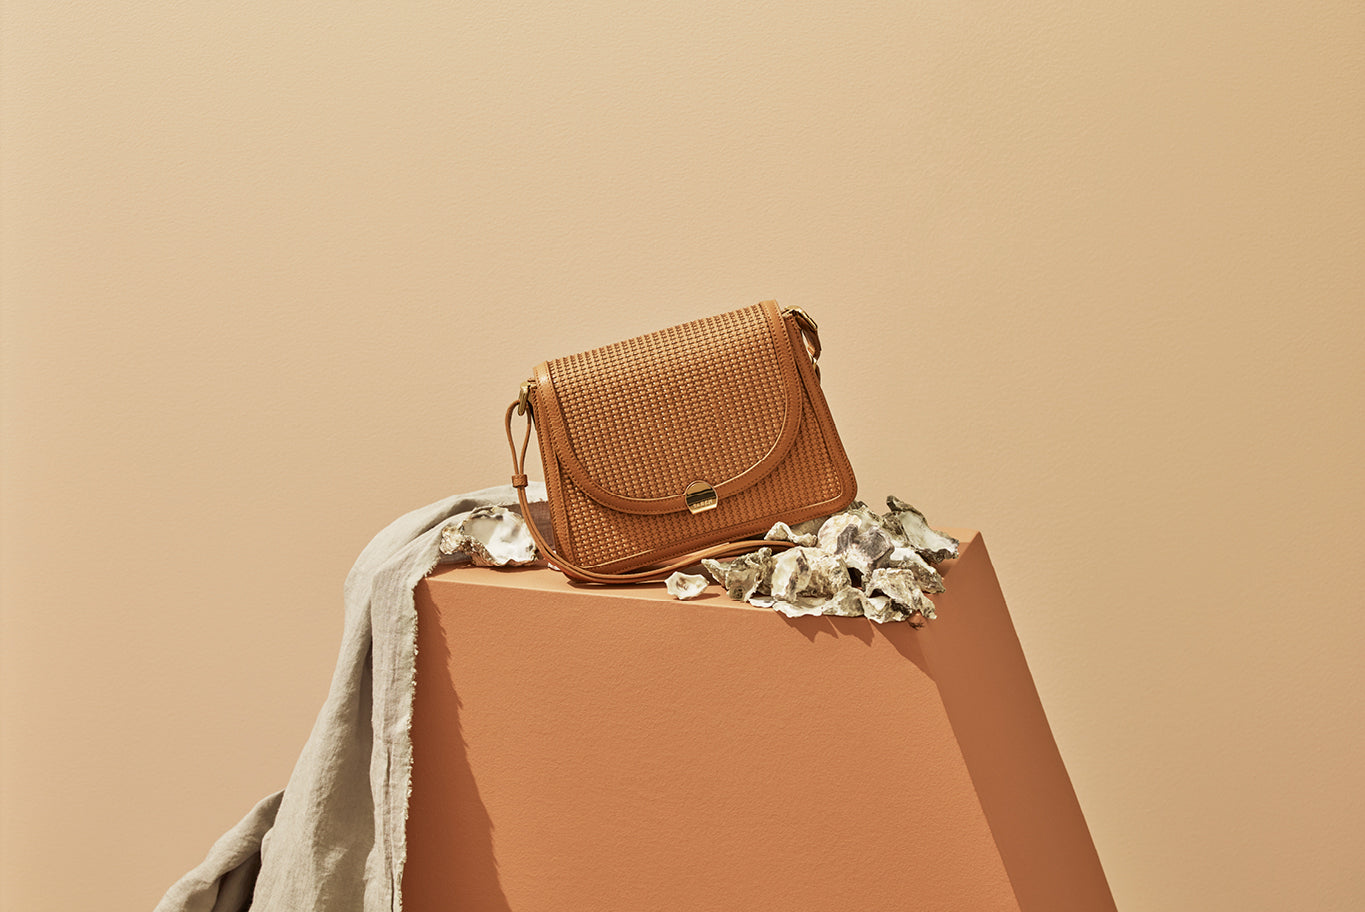 Saben SS20 Vessel collection Goldie handbag tan styled by karlya smith photographed by belinda merrie